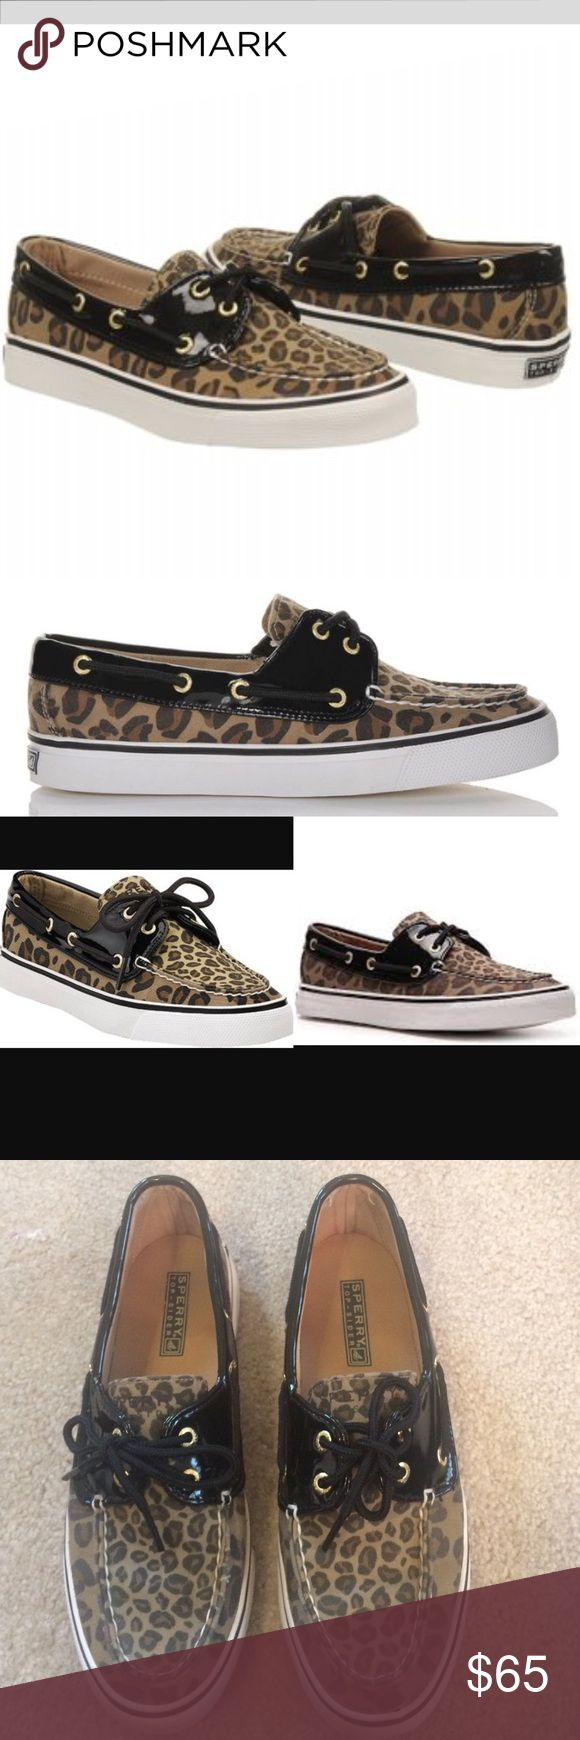 Sperry Top-Sider Biscayne Leopard Boat Shoes Black 🎉SALE Sperry Top-Sider Biscayne Leopard Boat Shoe, Size 7 1/2,  Leopard print fabric upper with patent black trim Topline lacing 2-eye lace-up closure Flexible rubber sole. In very good condition. Please ask any questions  💲Open To Offers💲 🚫No Trades🚫 📦Ask About Bundle Discounts💰 Sperry Top-Sider Shoes Flats & Loafers